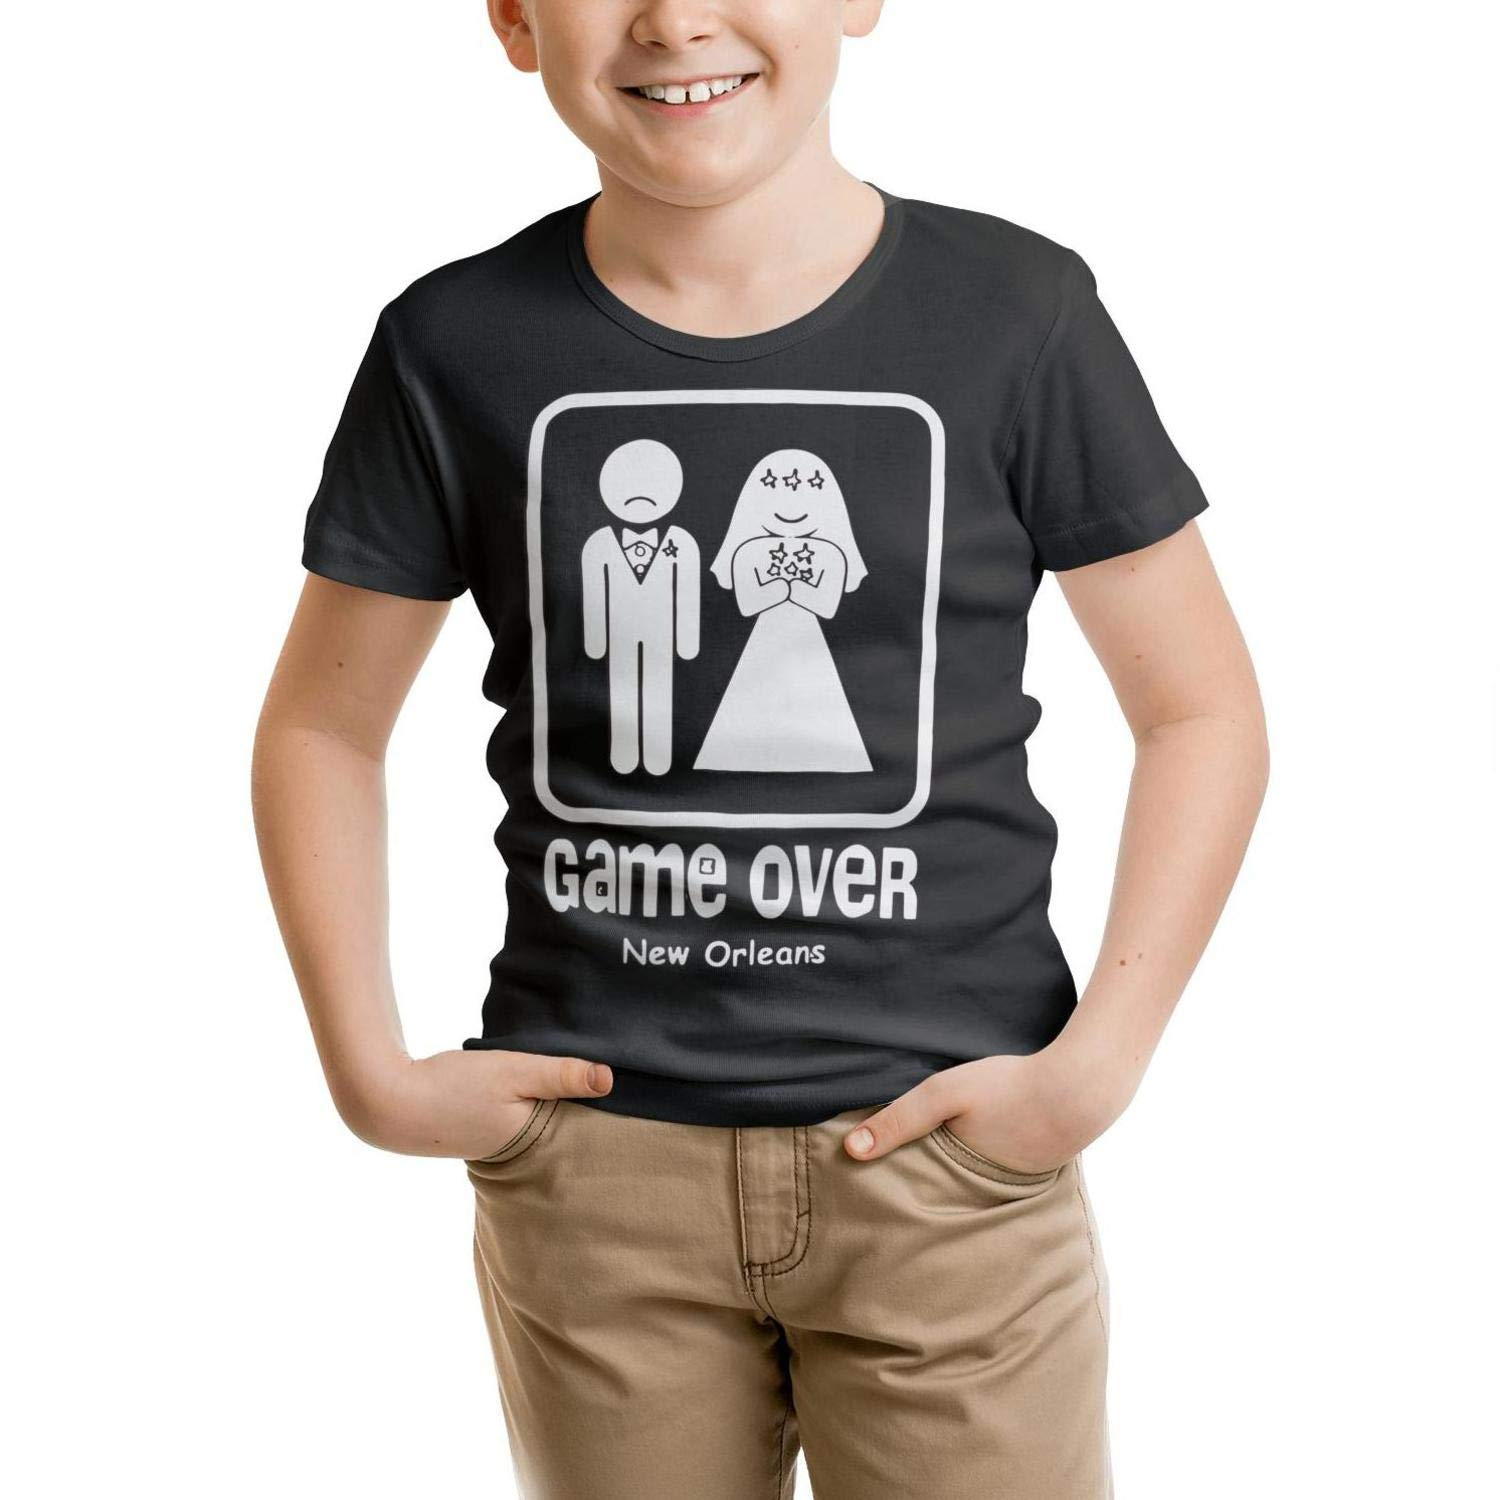 Mmuue Wedding-Game Over Black Baby Printing Short Sleeve O-Neck Tshirt Personalized Art